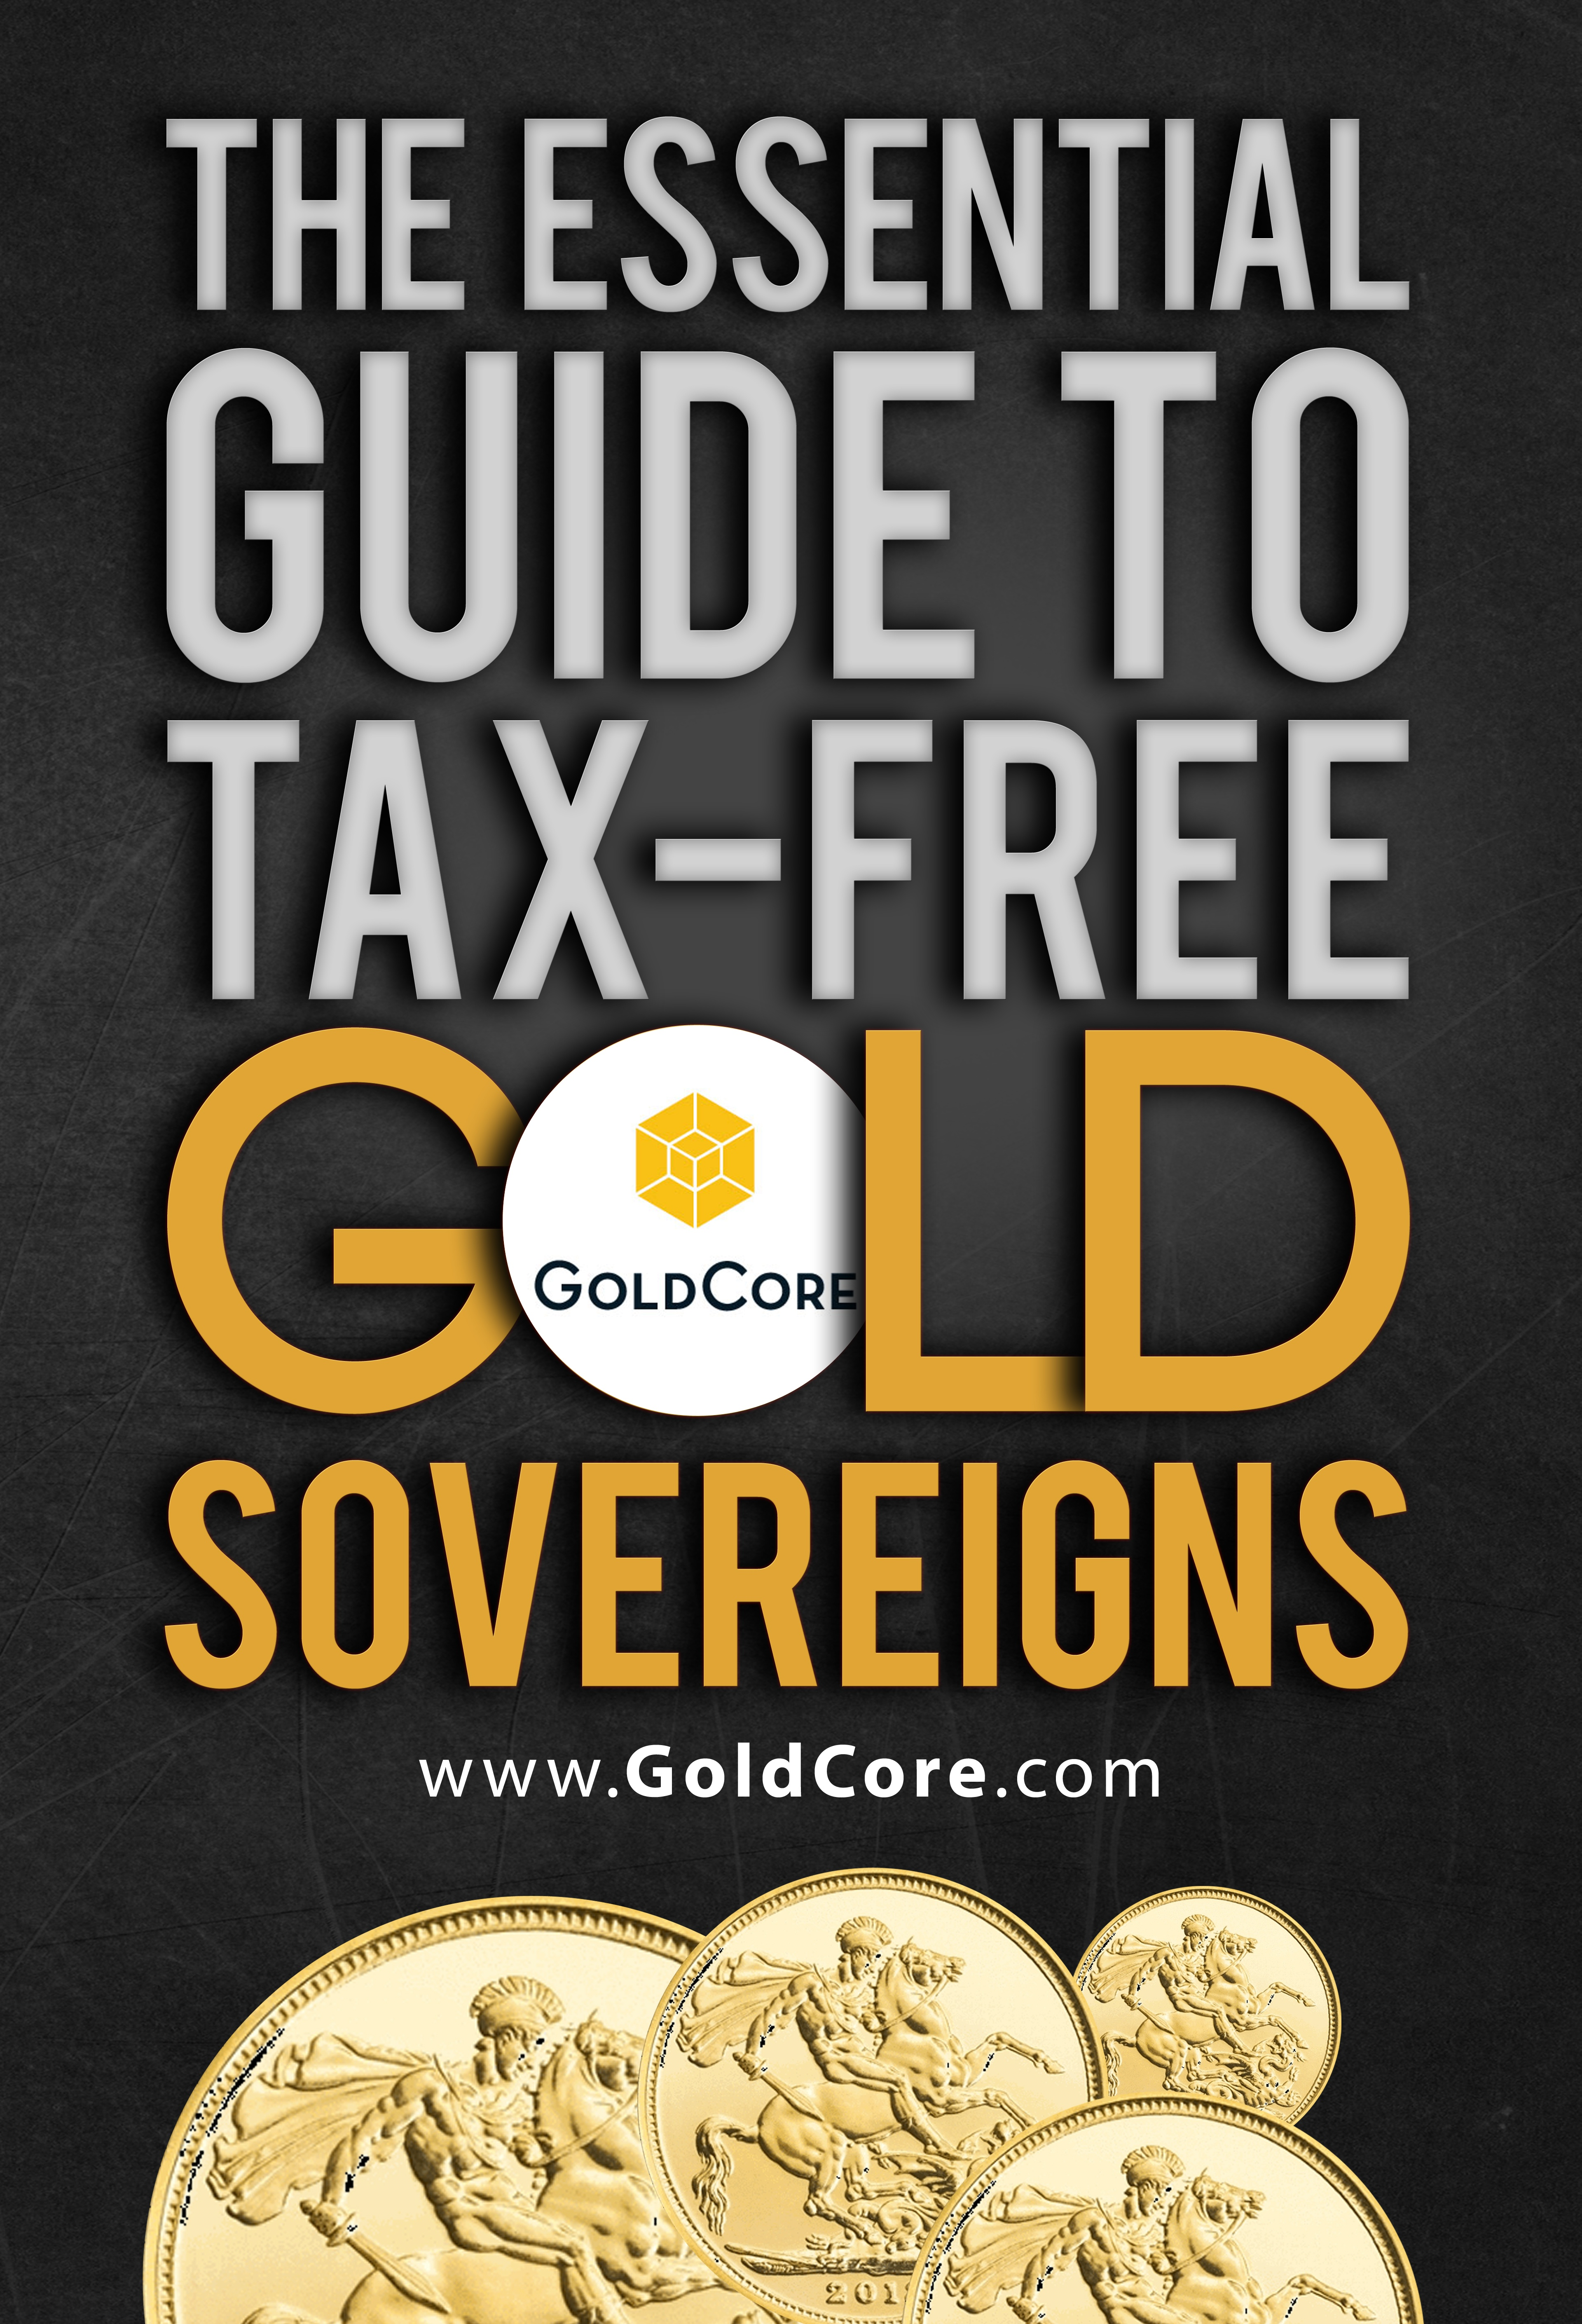 The_Essential_Guide_to_Tax_Free_Gold_Sovereigns_-_Copy.jpg